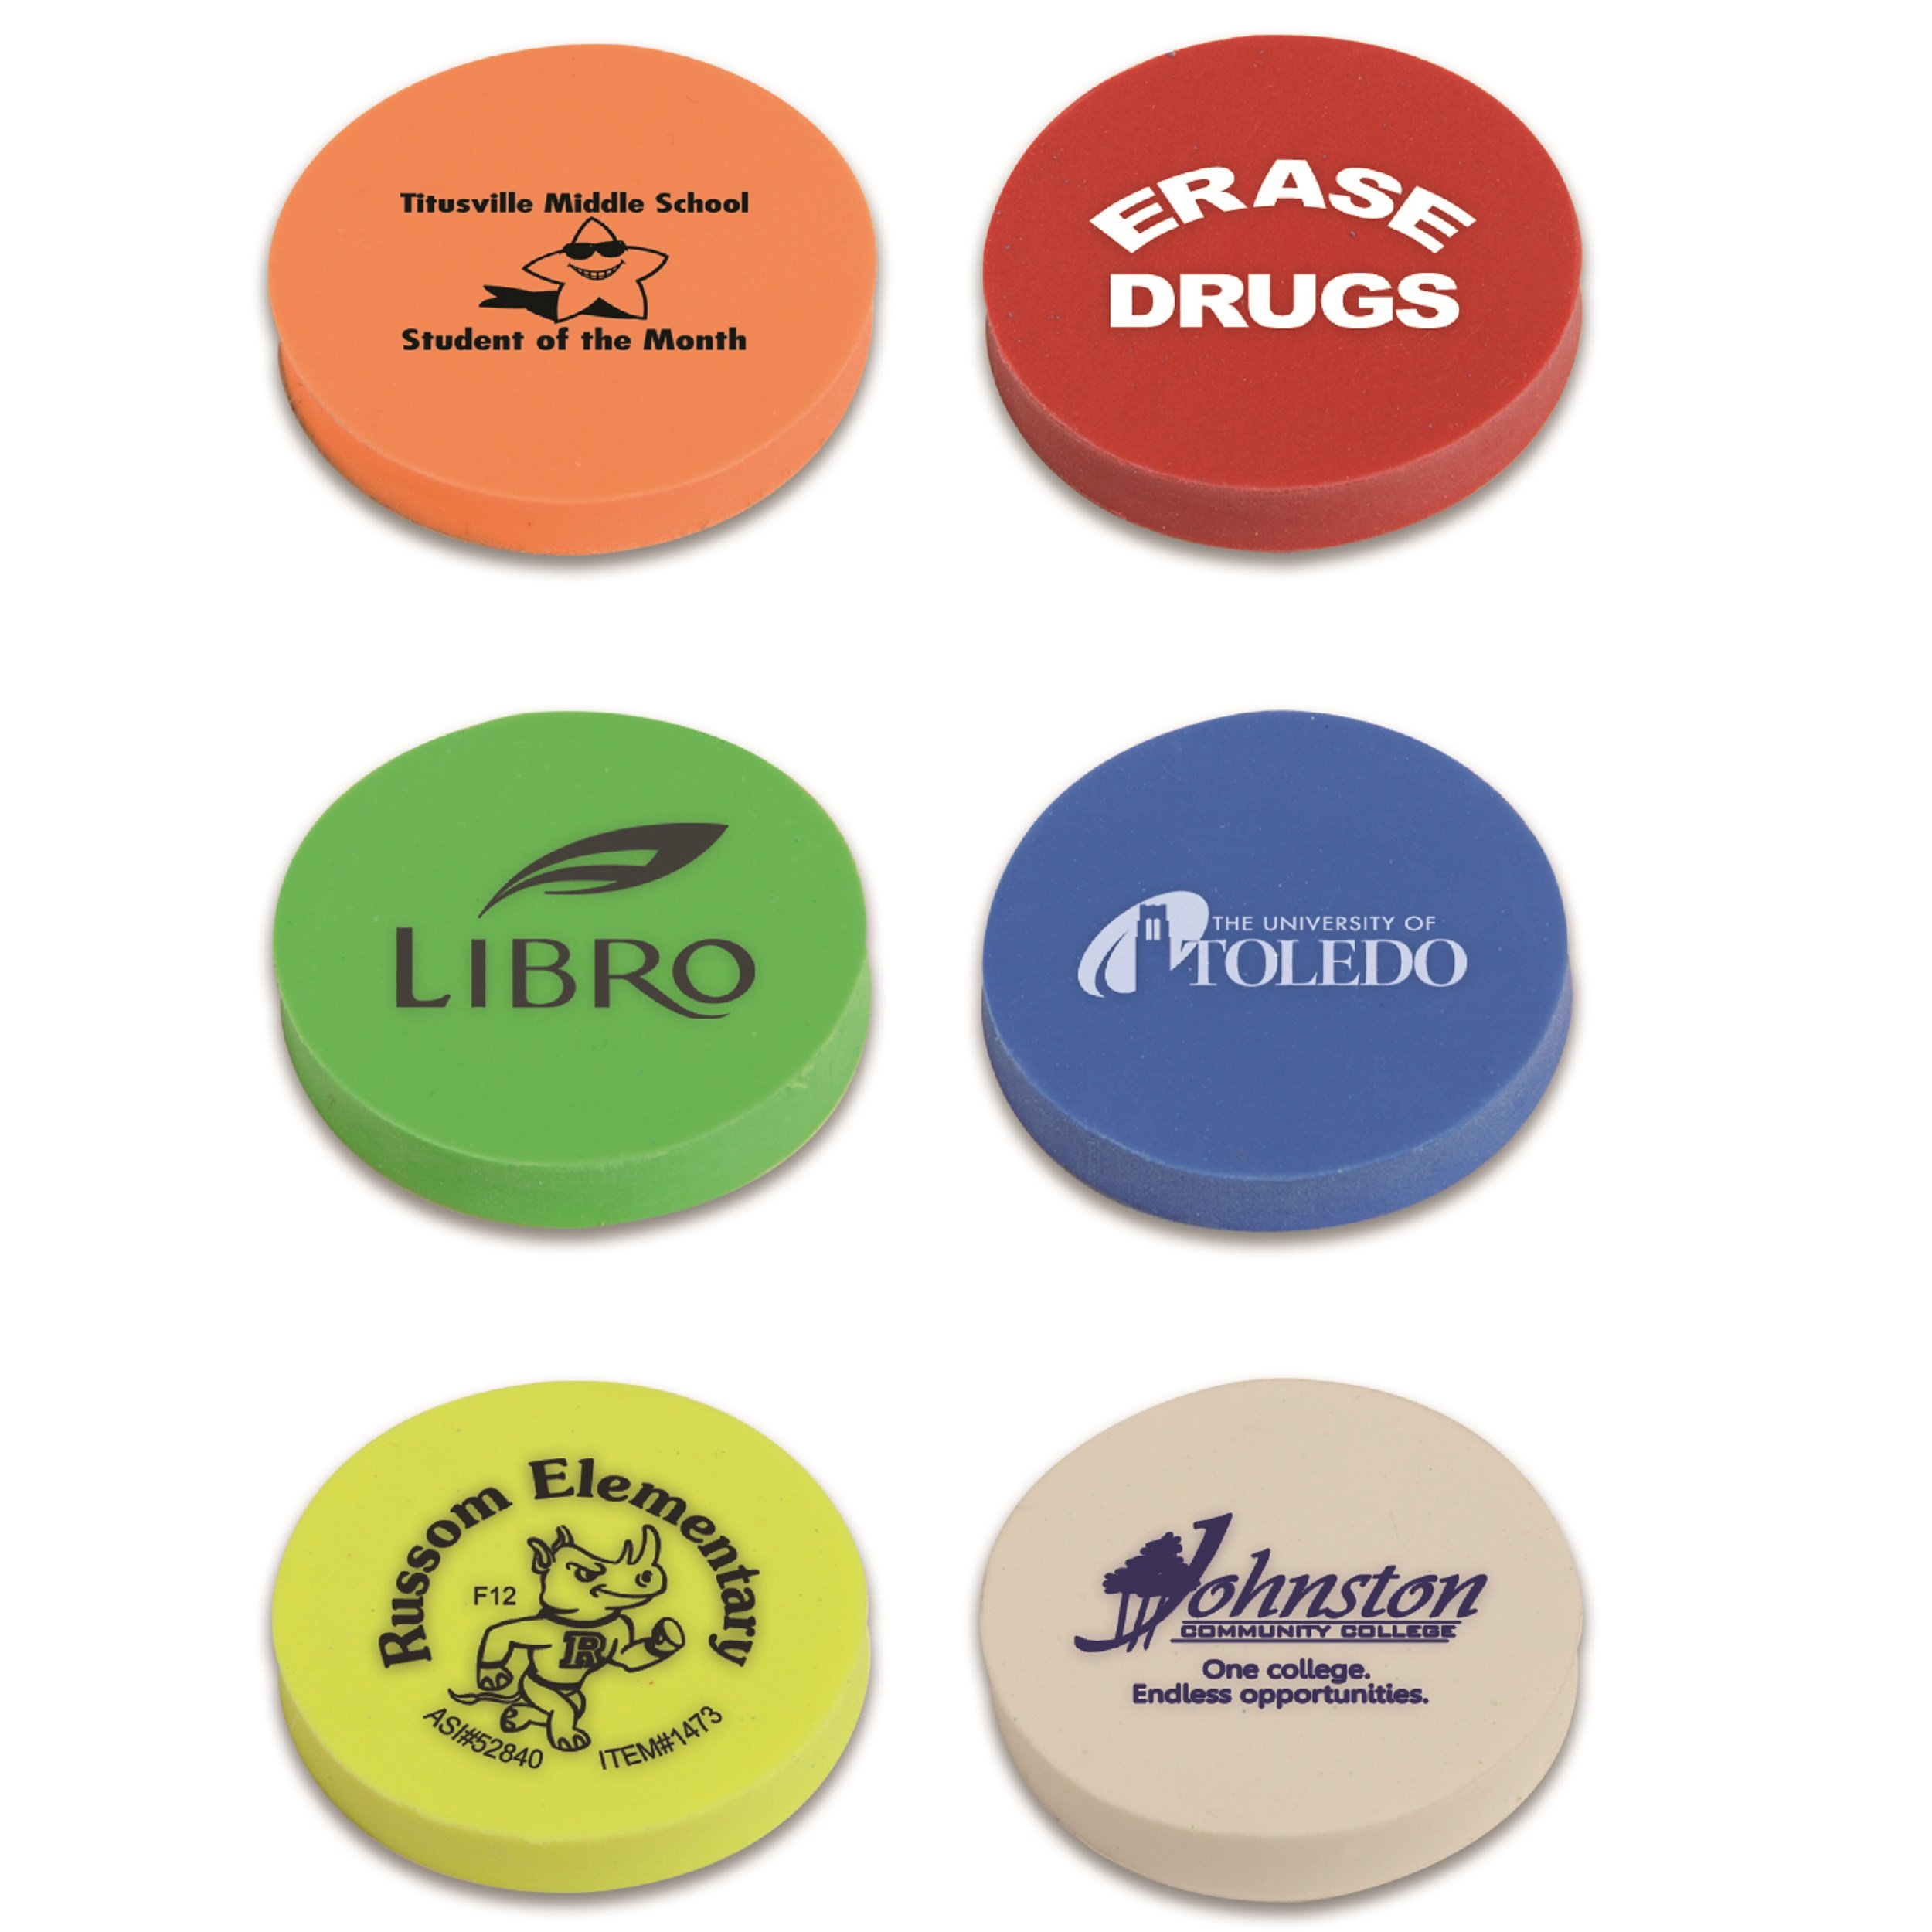 250 Personalized Round Eraser Imprinted With Your Logo Or Message